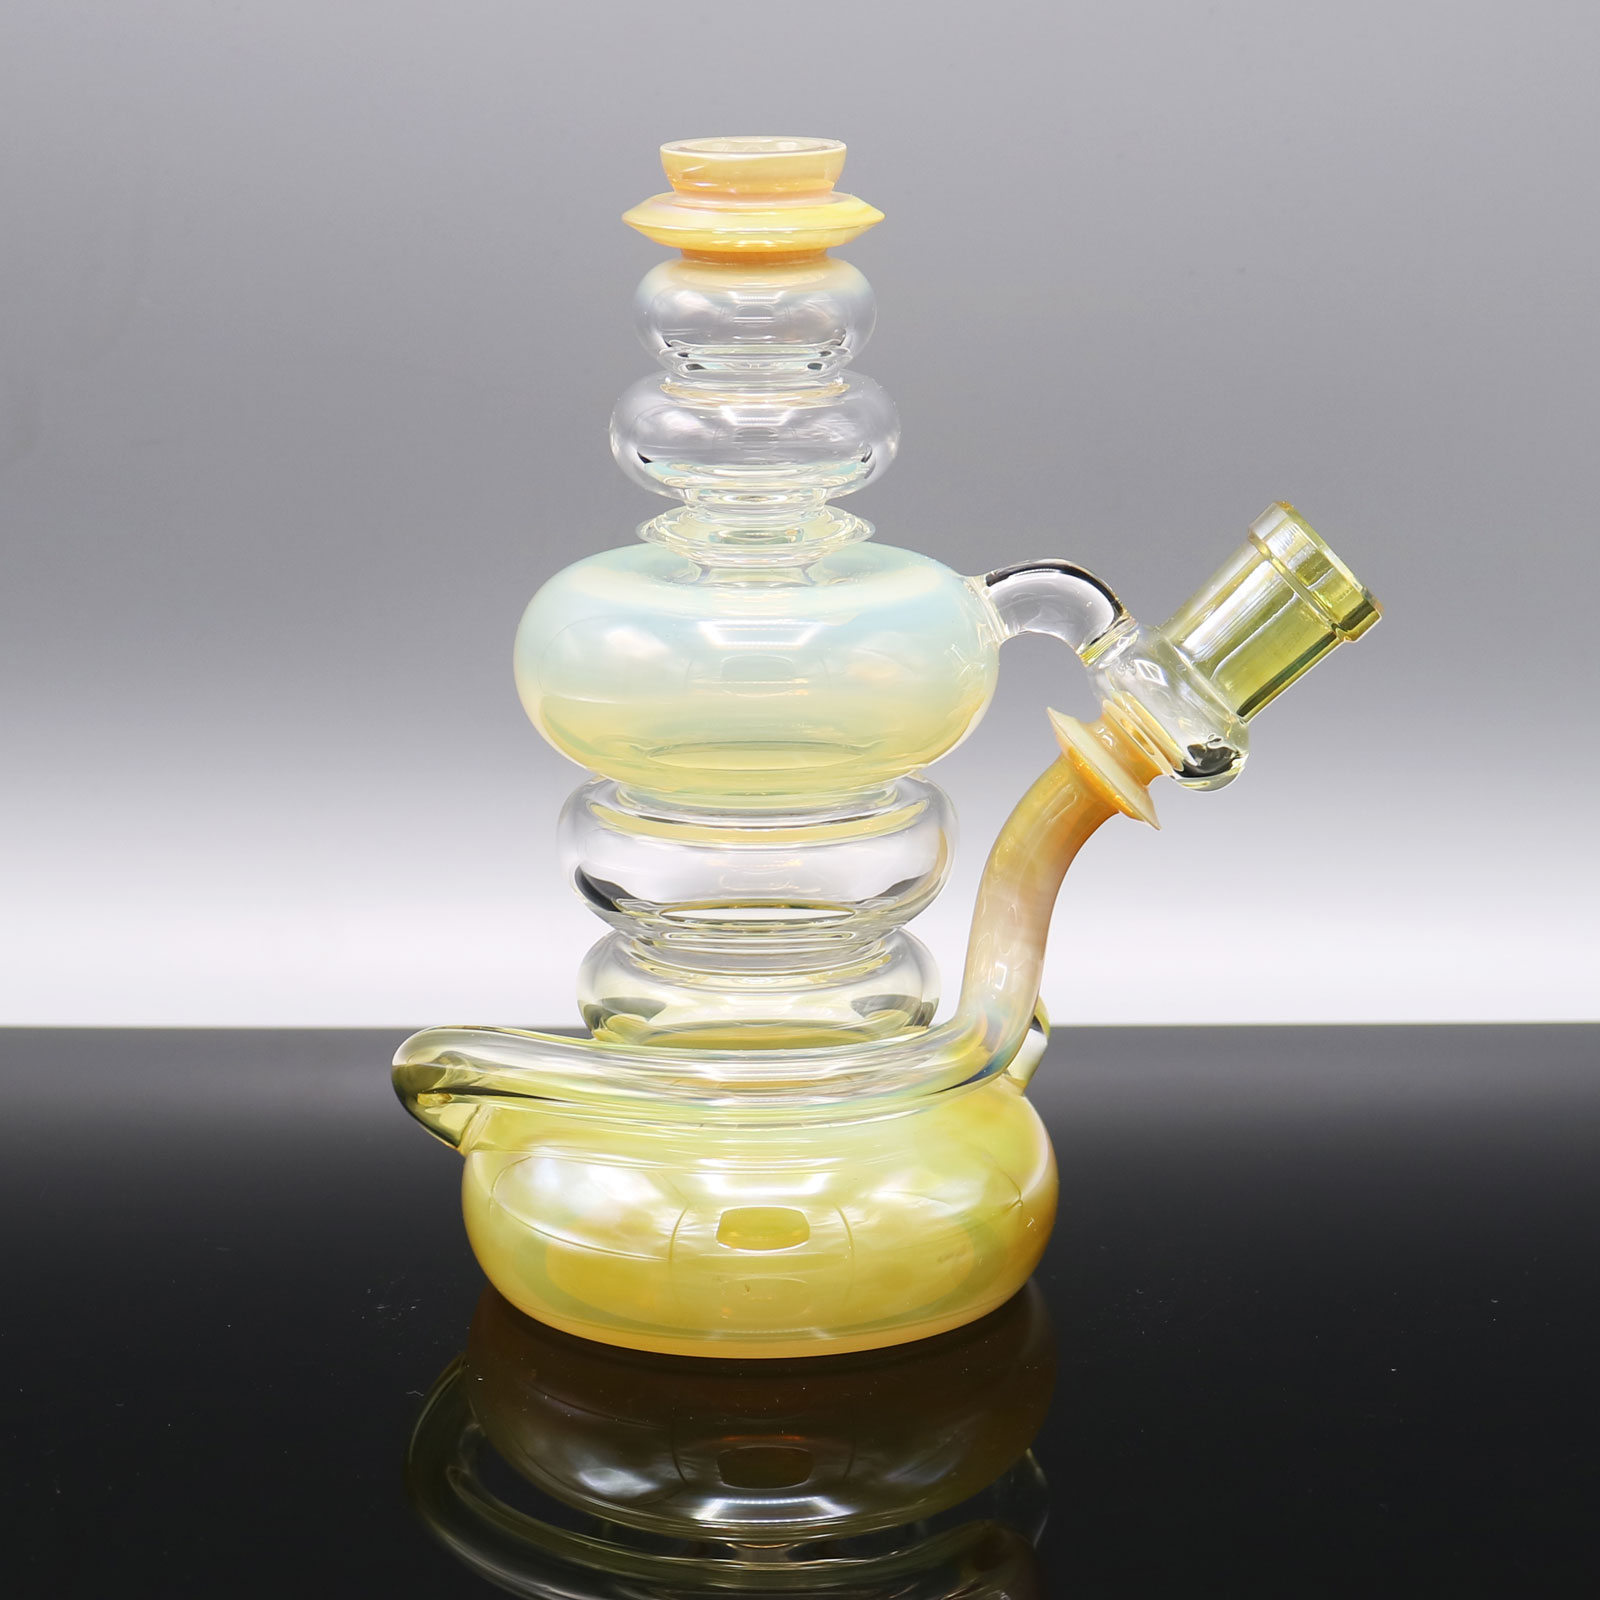 Mike Philpot – Fumed 14mm Medium Spinnerjet Set